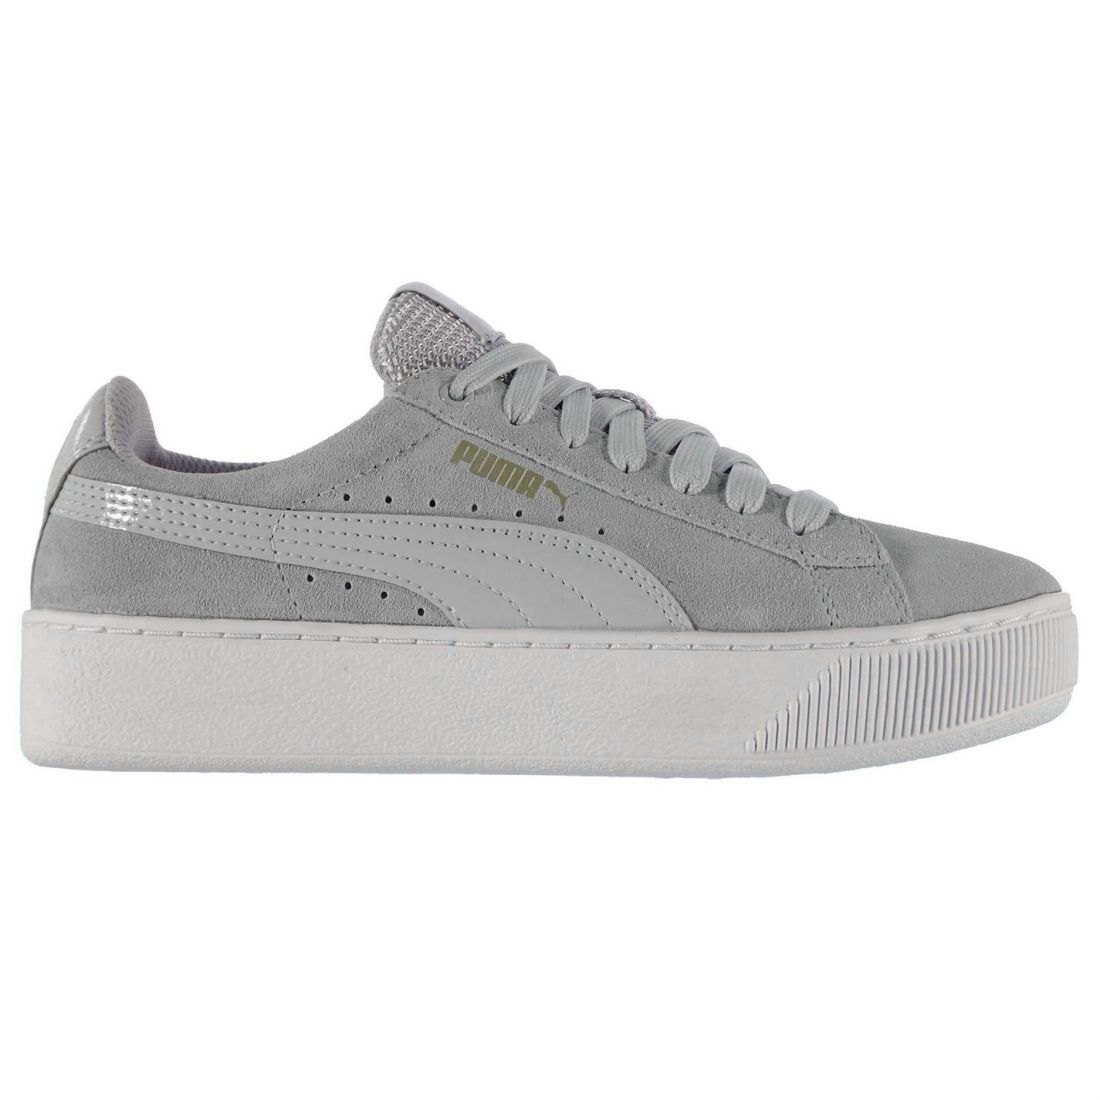 2cf43a1c921 Image is loading Puma-Ladies-Vikky-Platform-Trainers-Laces-Fastened-Shoes-